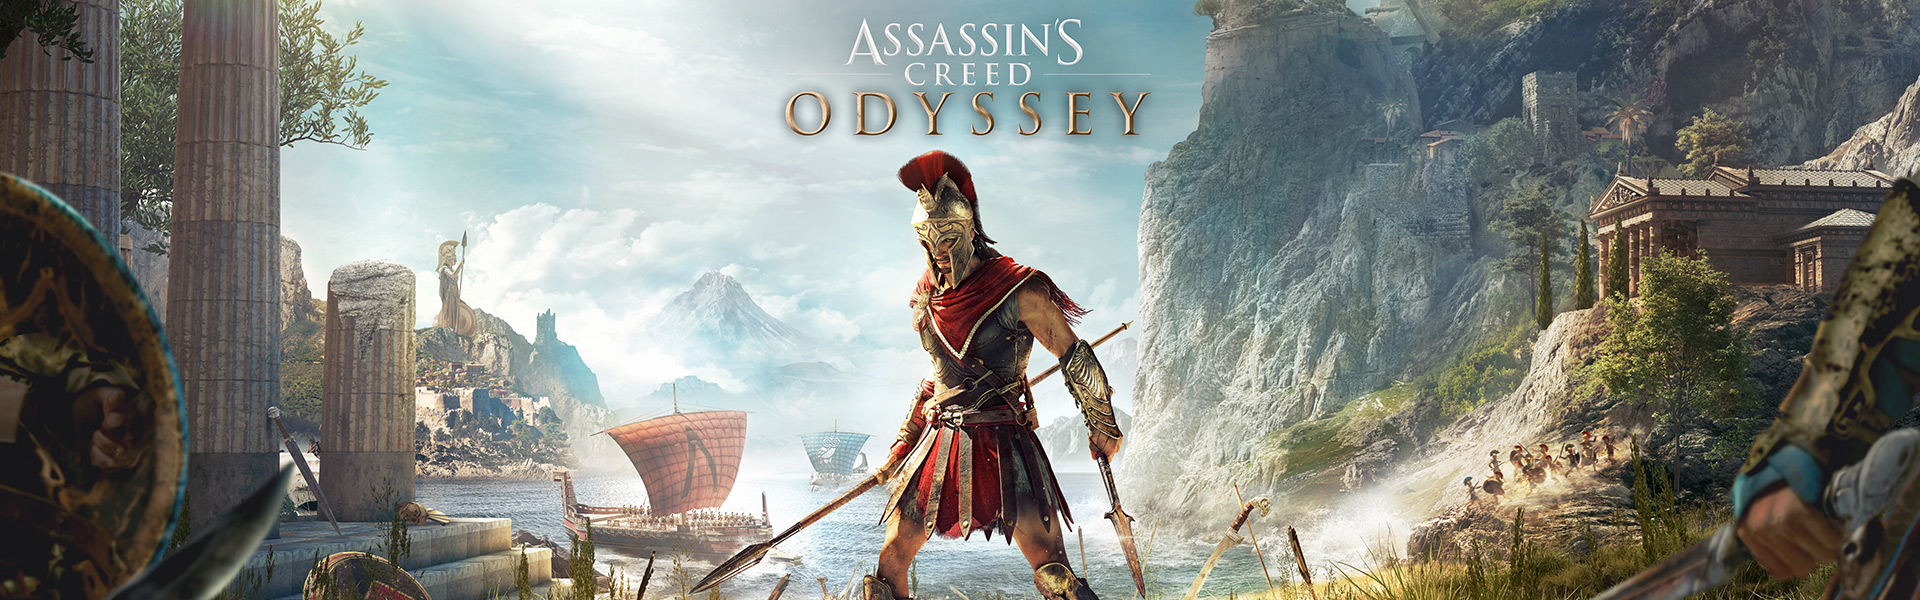 Assassin's Creed Odyssey, Greek hero Alexios stands in fighting pose wielding one spear